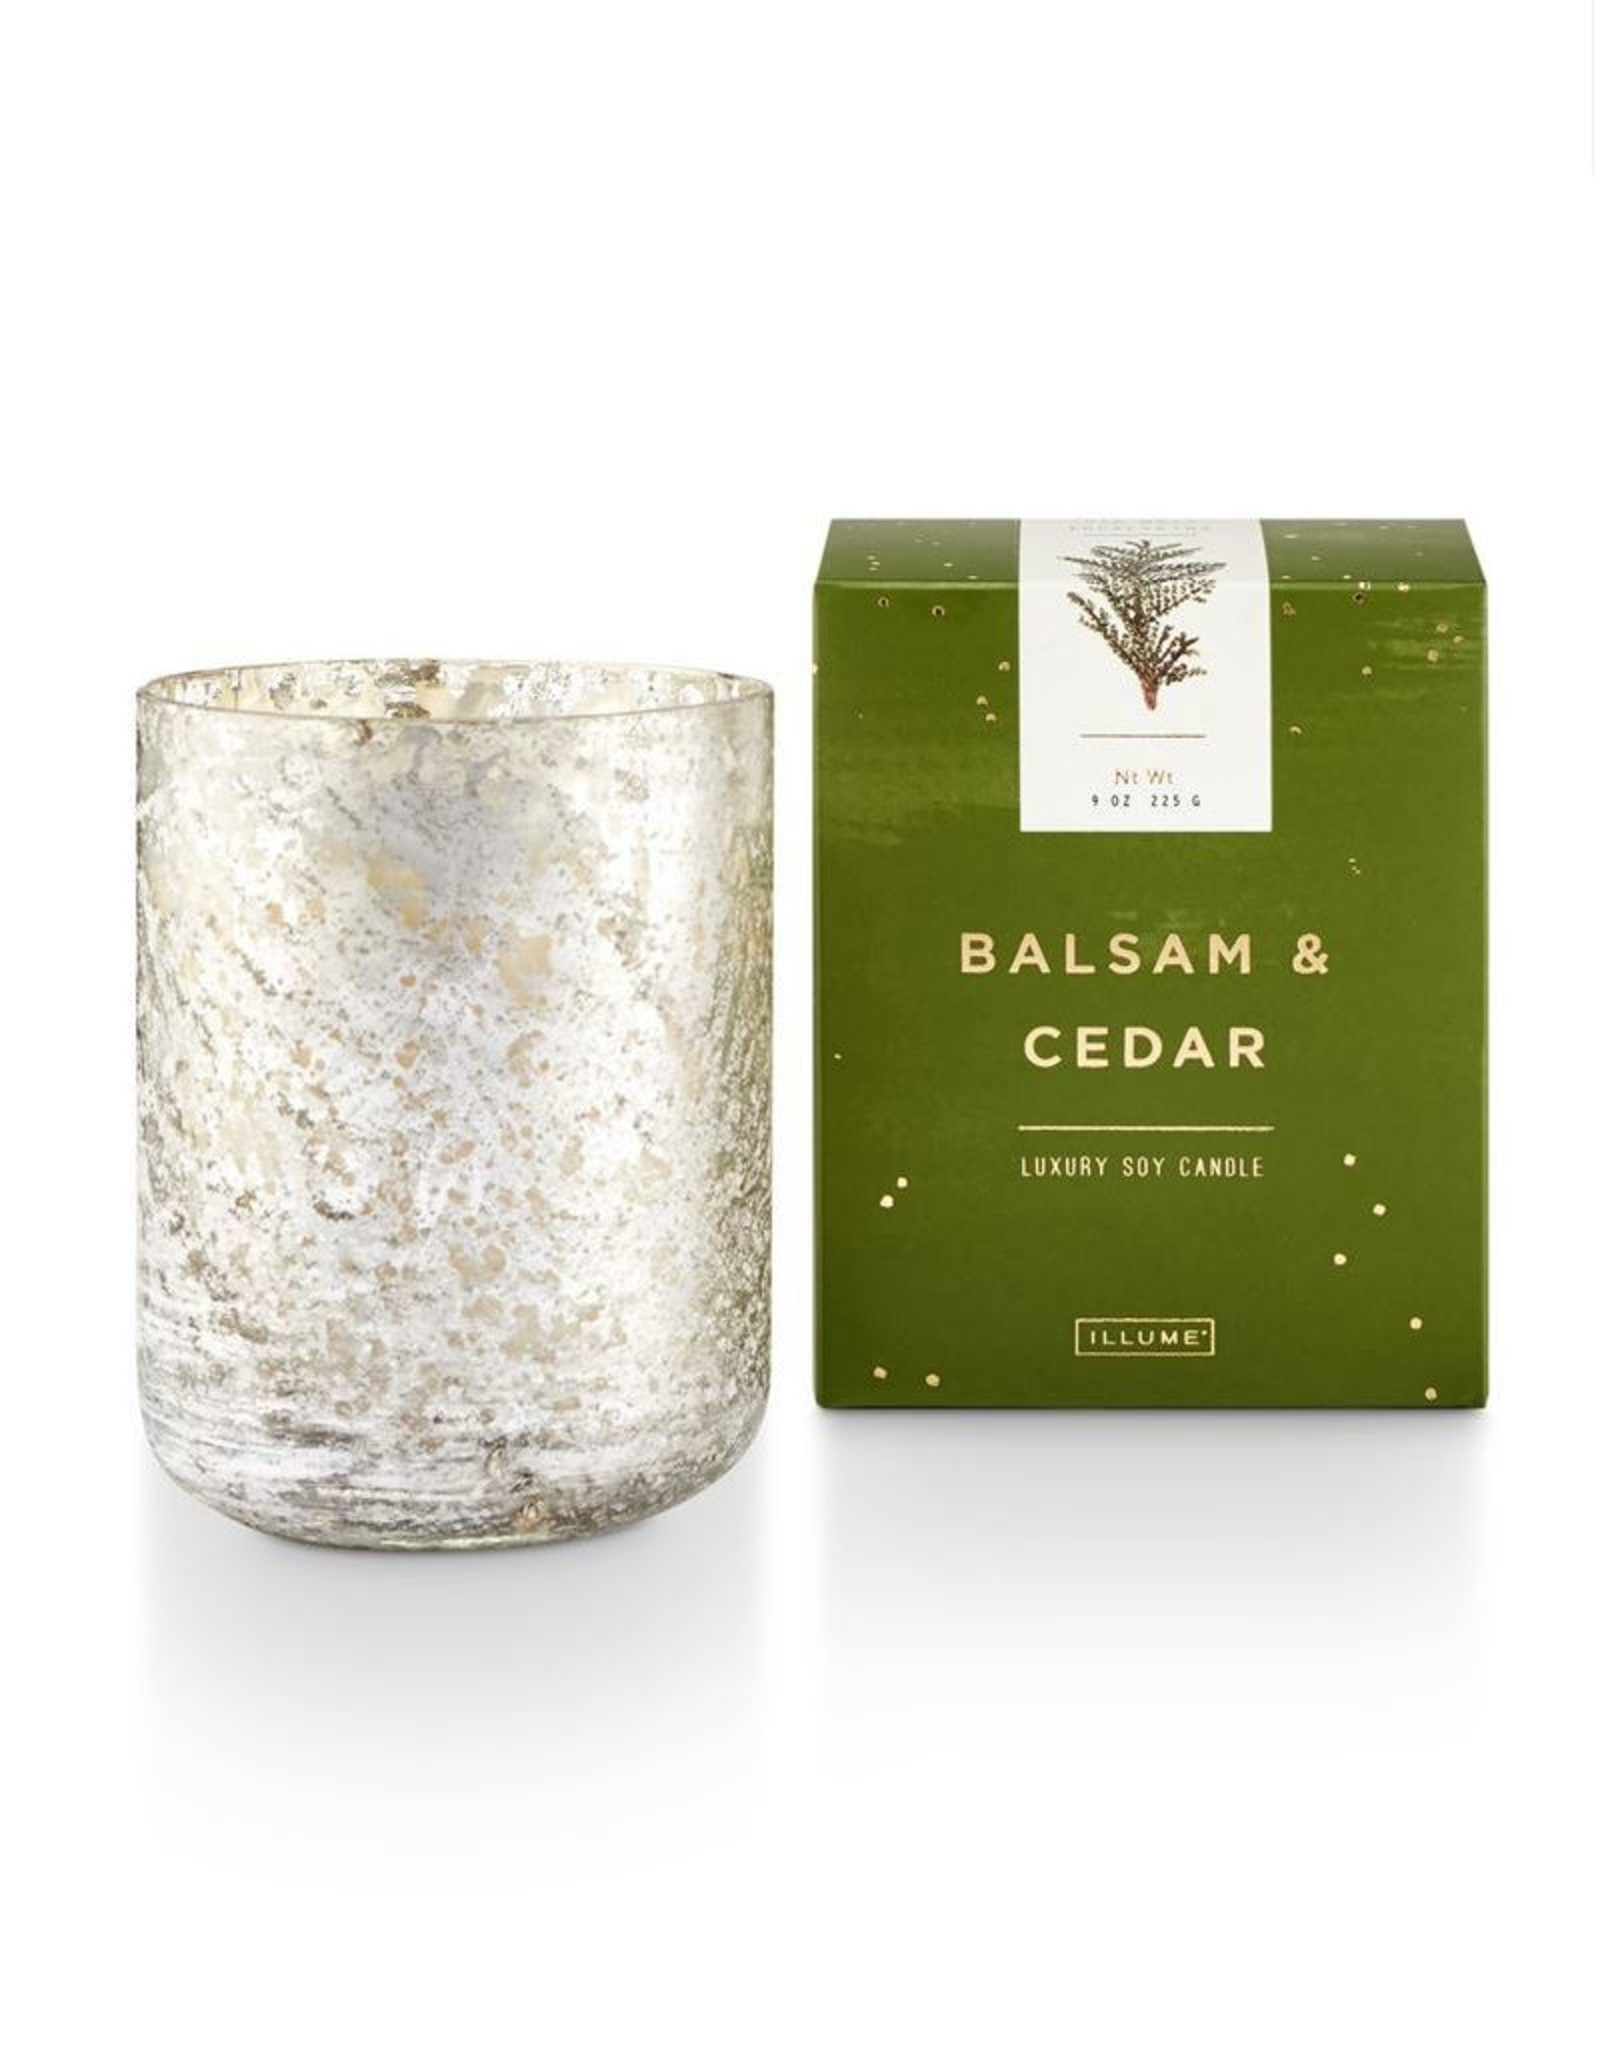 Illume Balsam & Cedar Small Luxe Boxed Candle